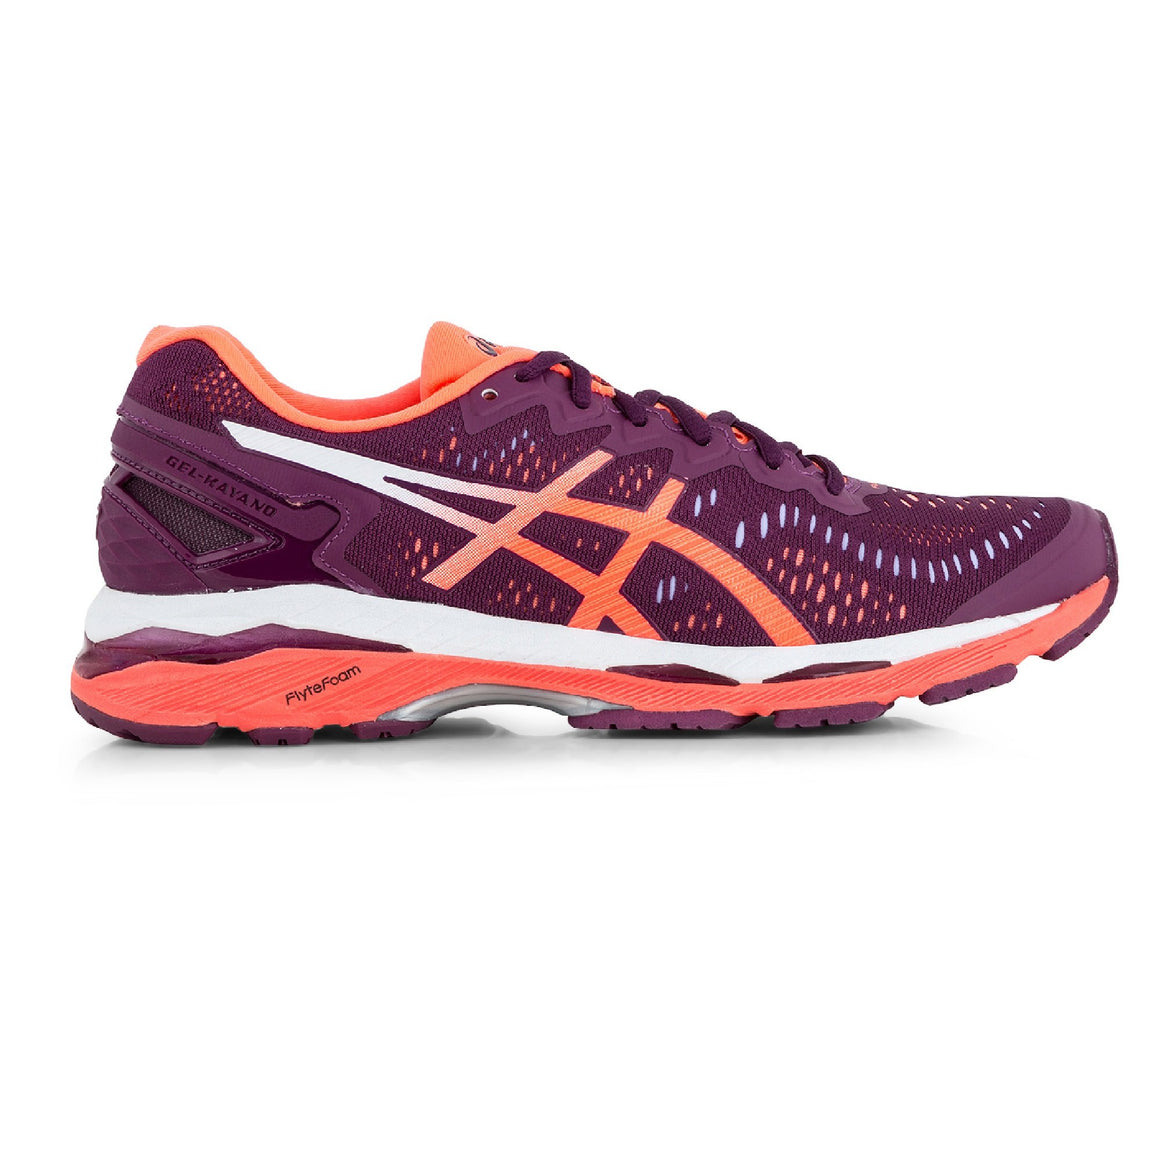 Ladies Asics Gel Kayano 23, Dark Purple